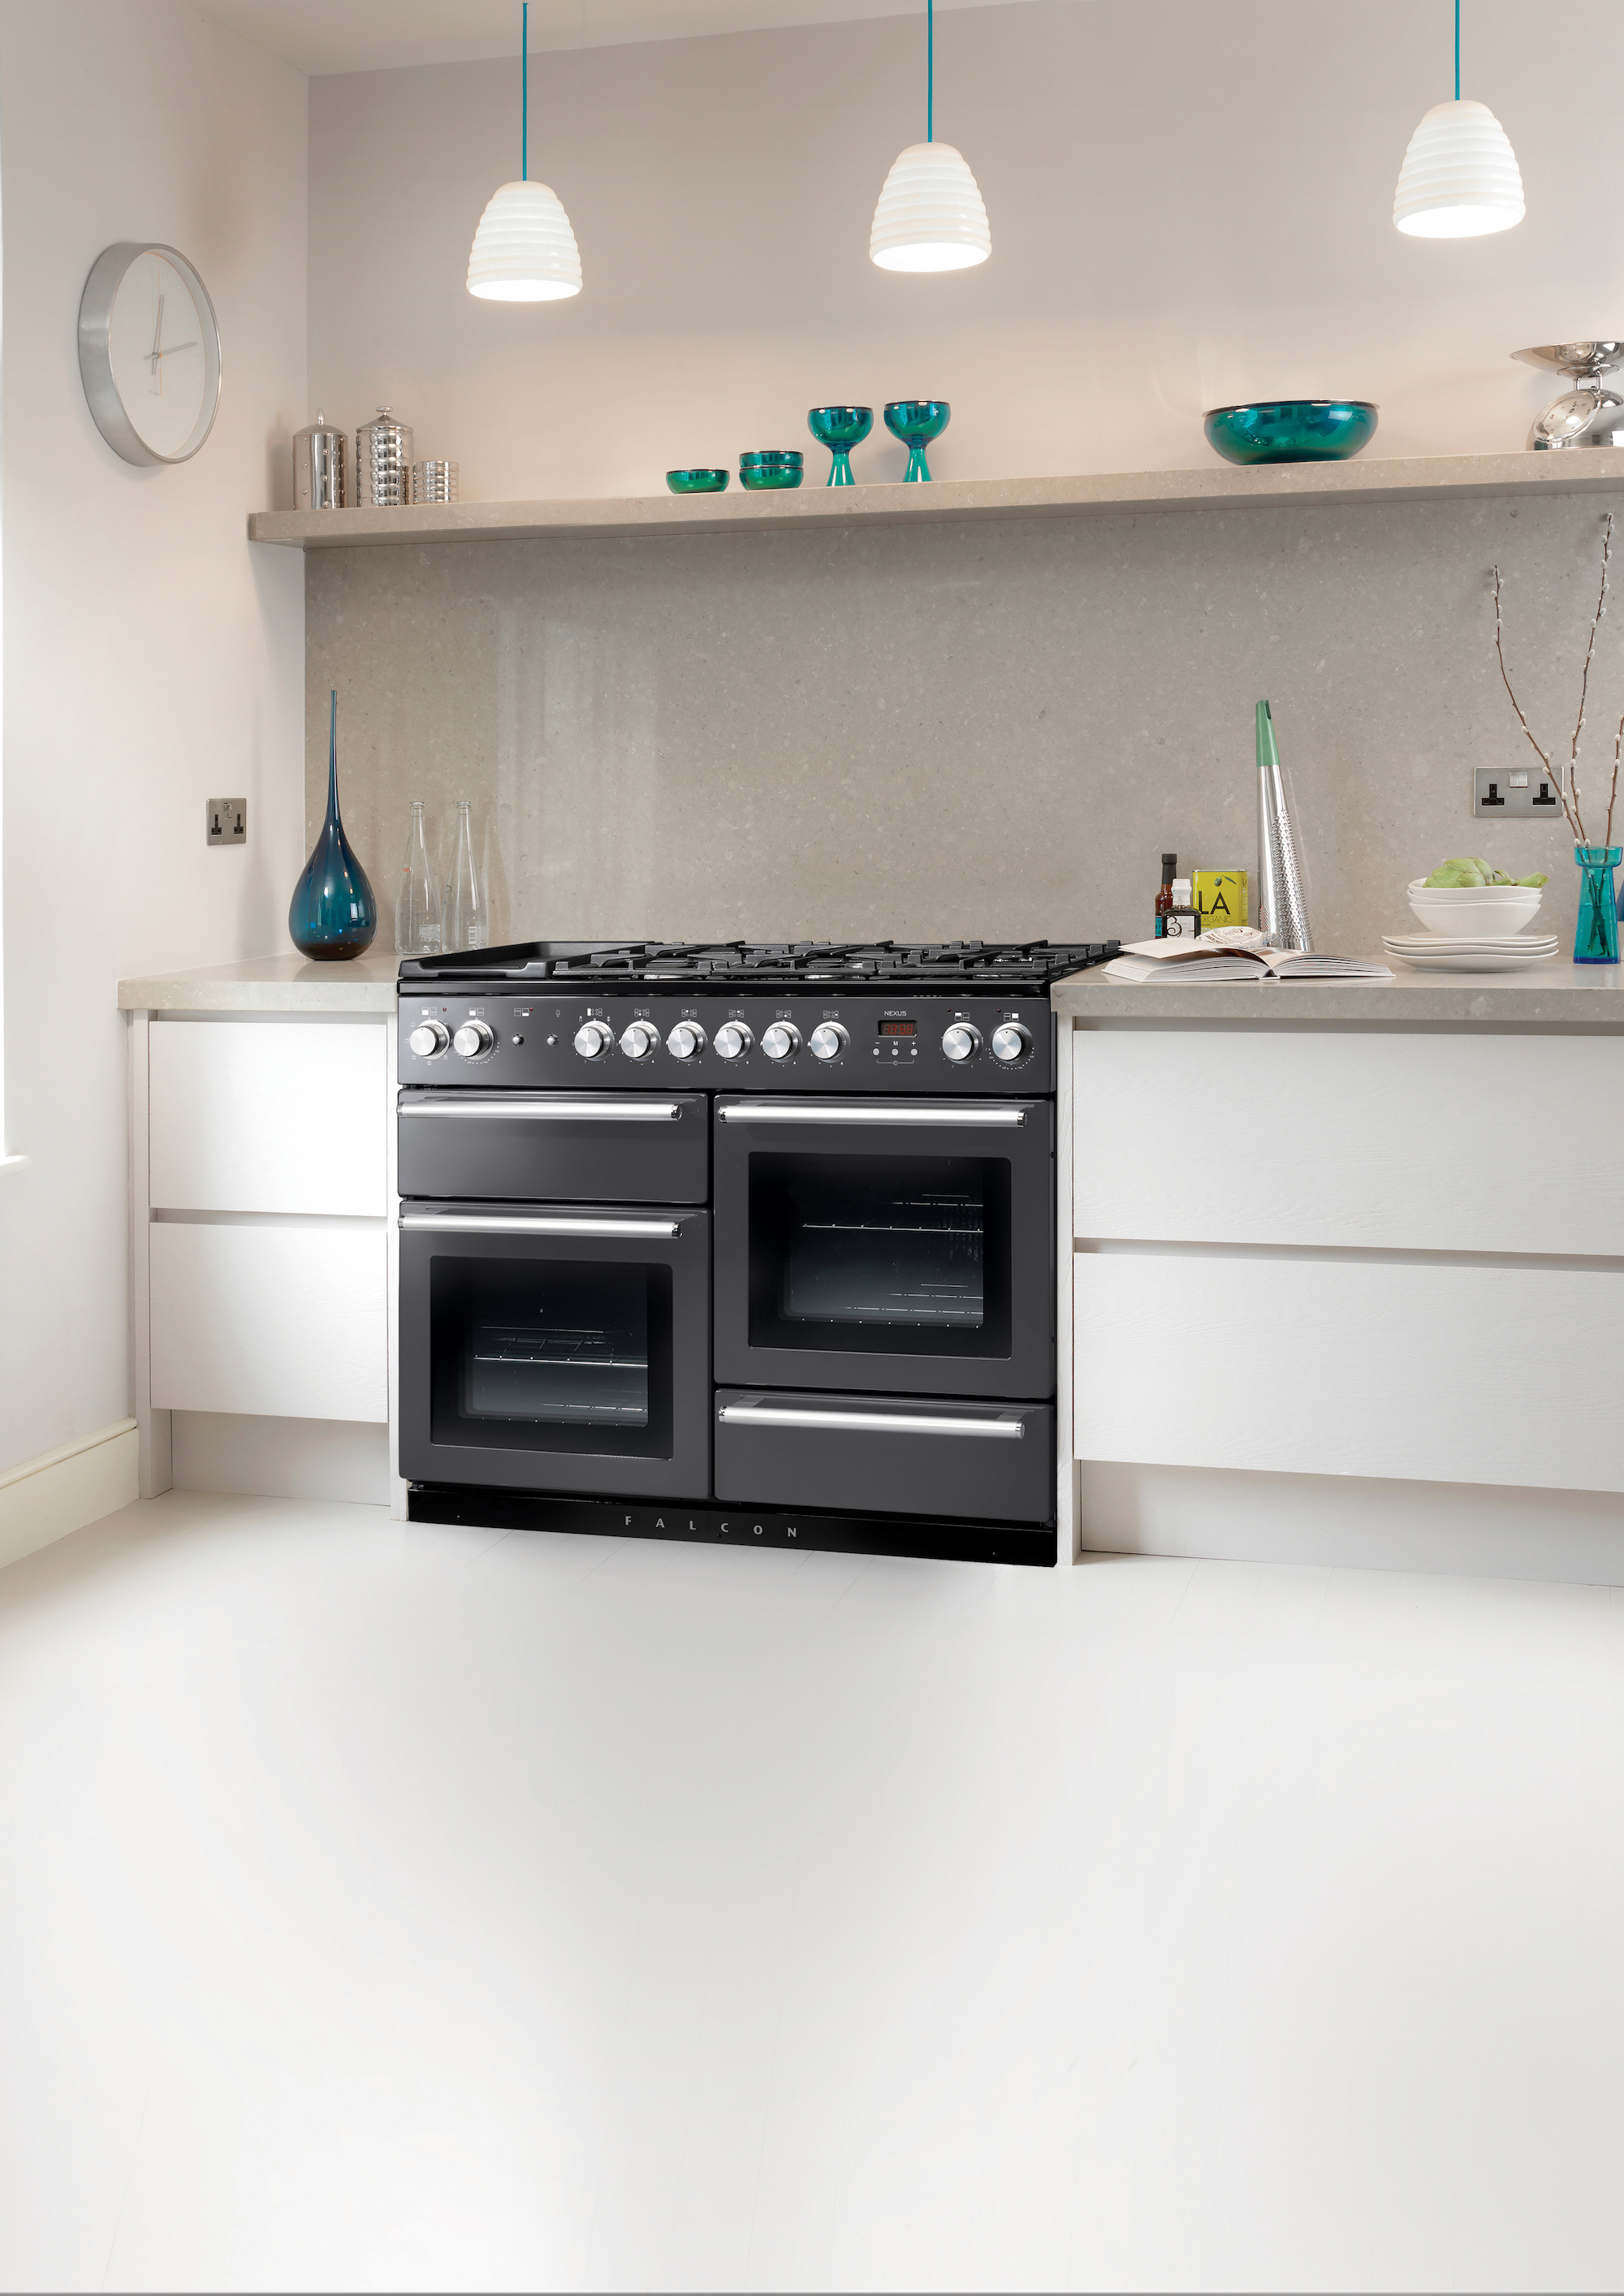 nexus falcon slate liebherr     premium kitchen appliances by falcon and liebherr exclusively      rh   prweb com